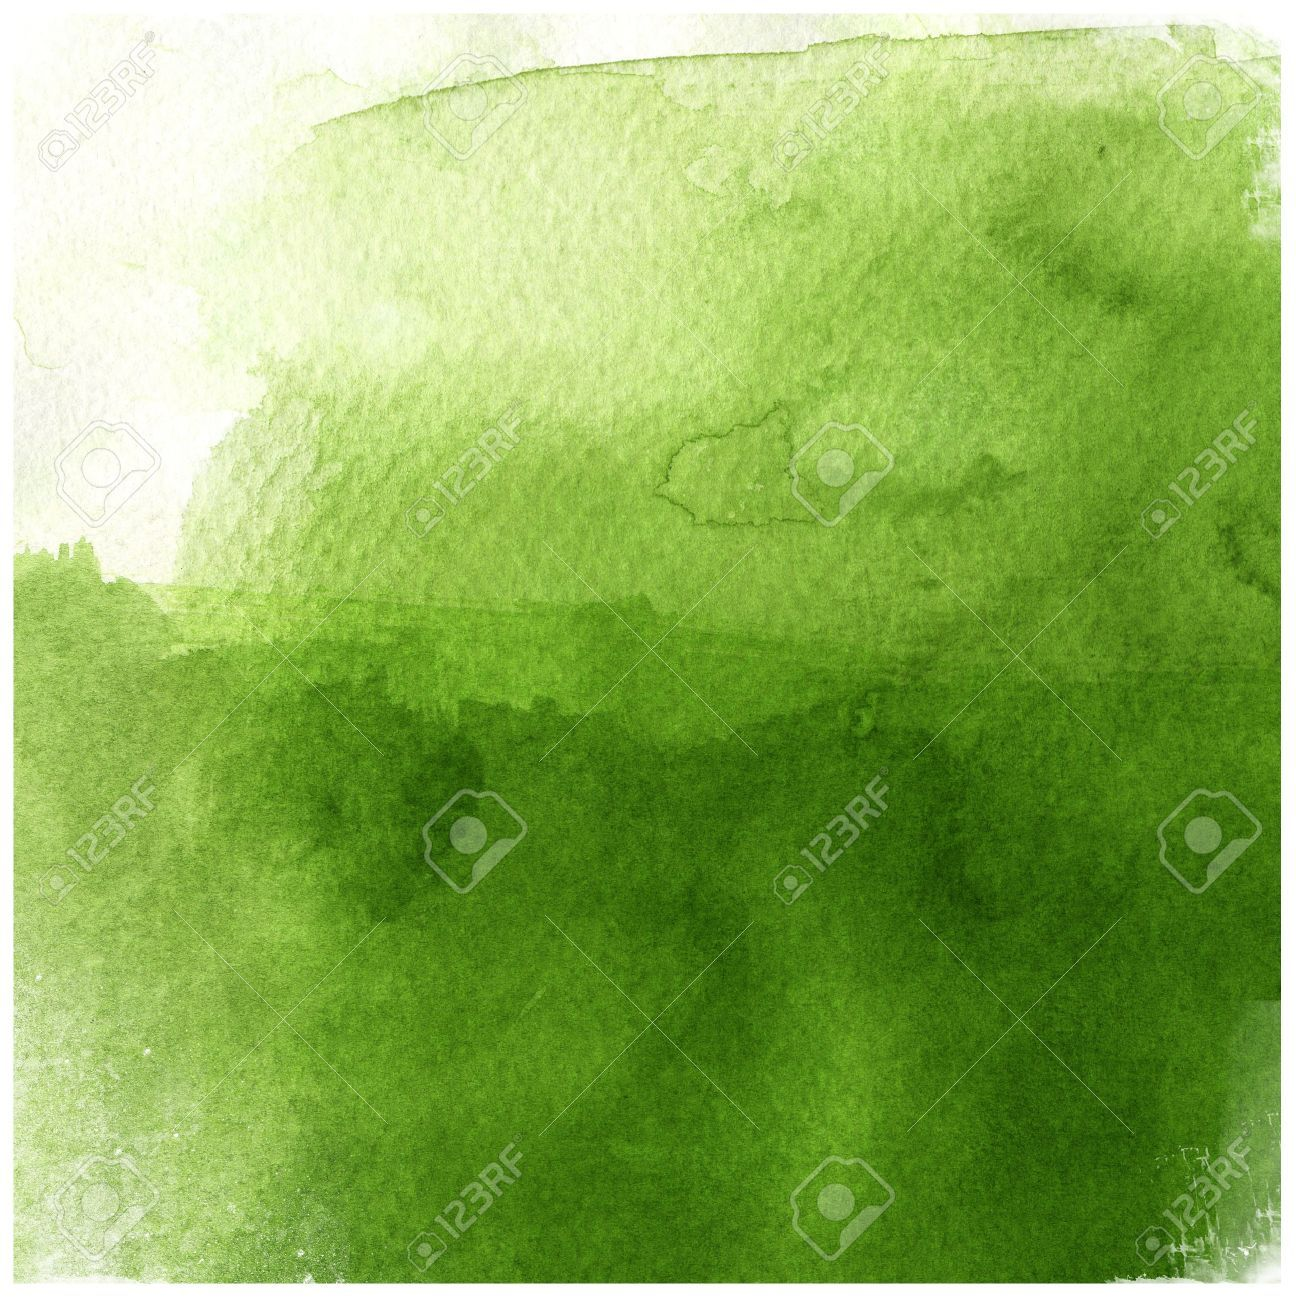 Image Result For Watercolor Grass Texture With Images Grass